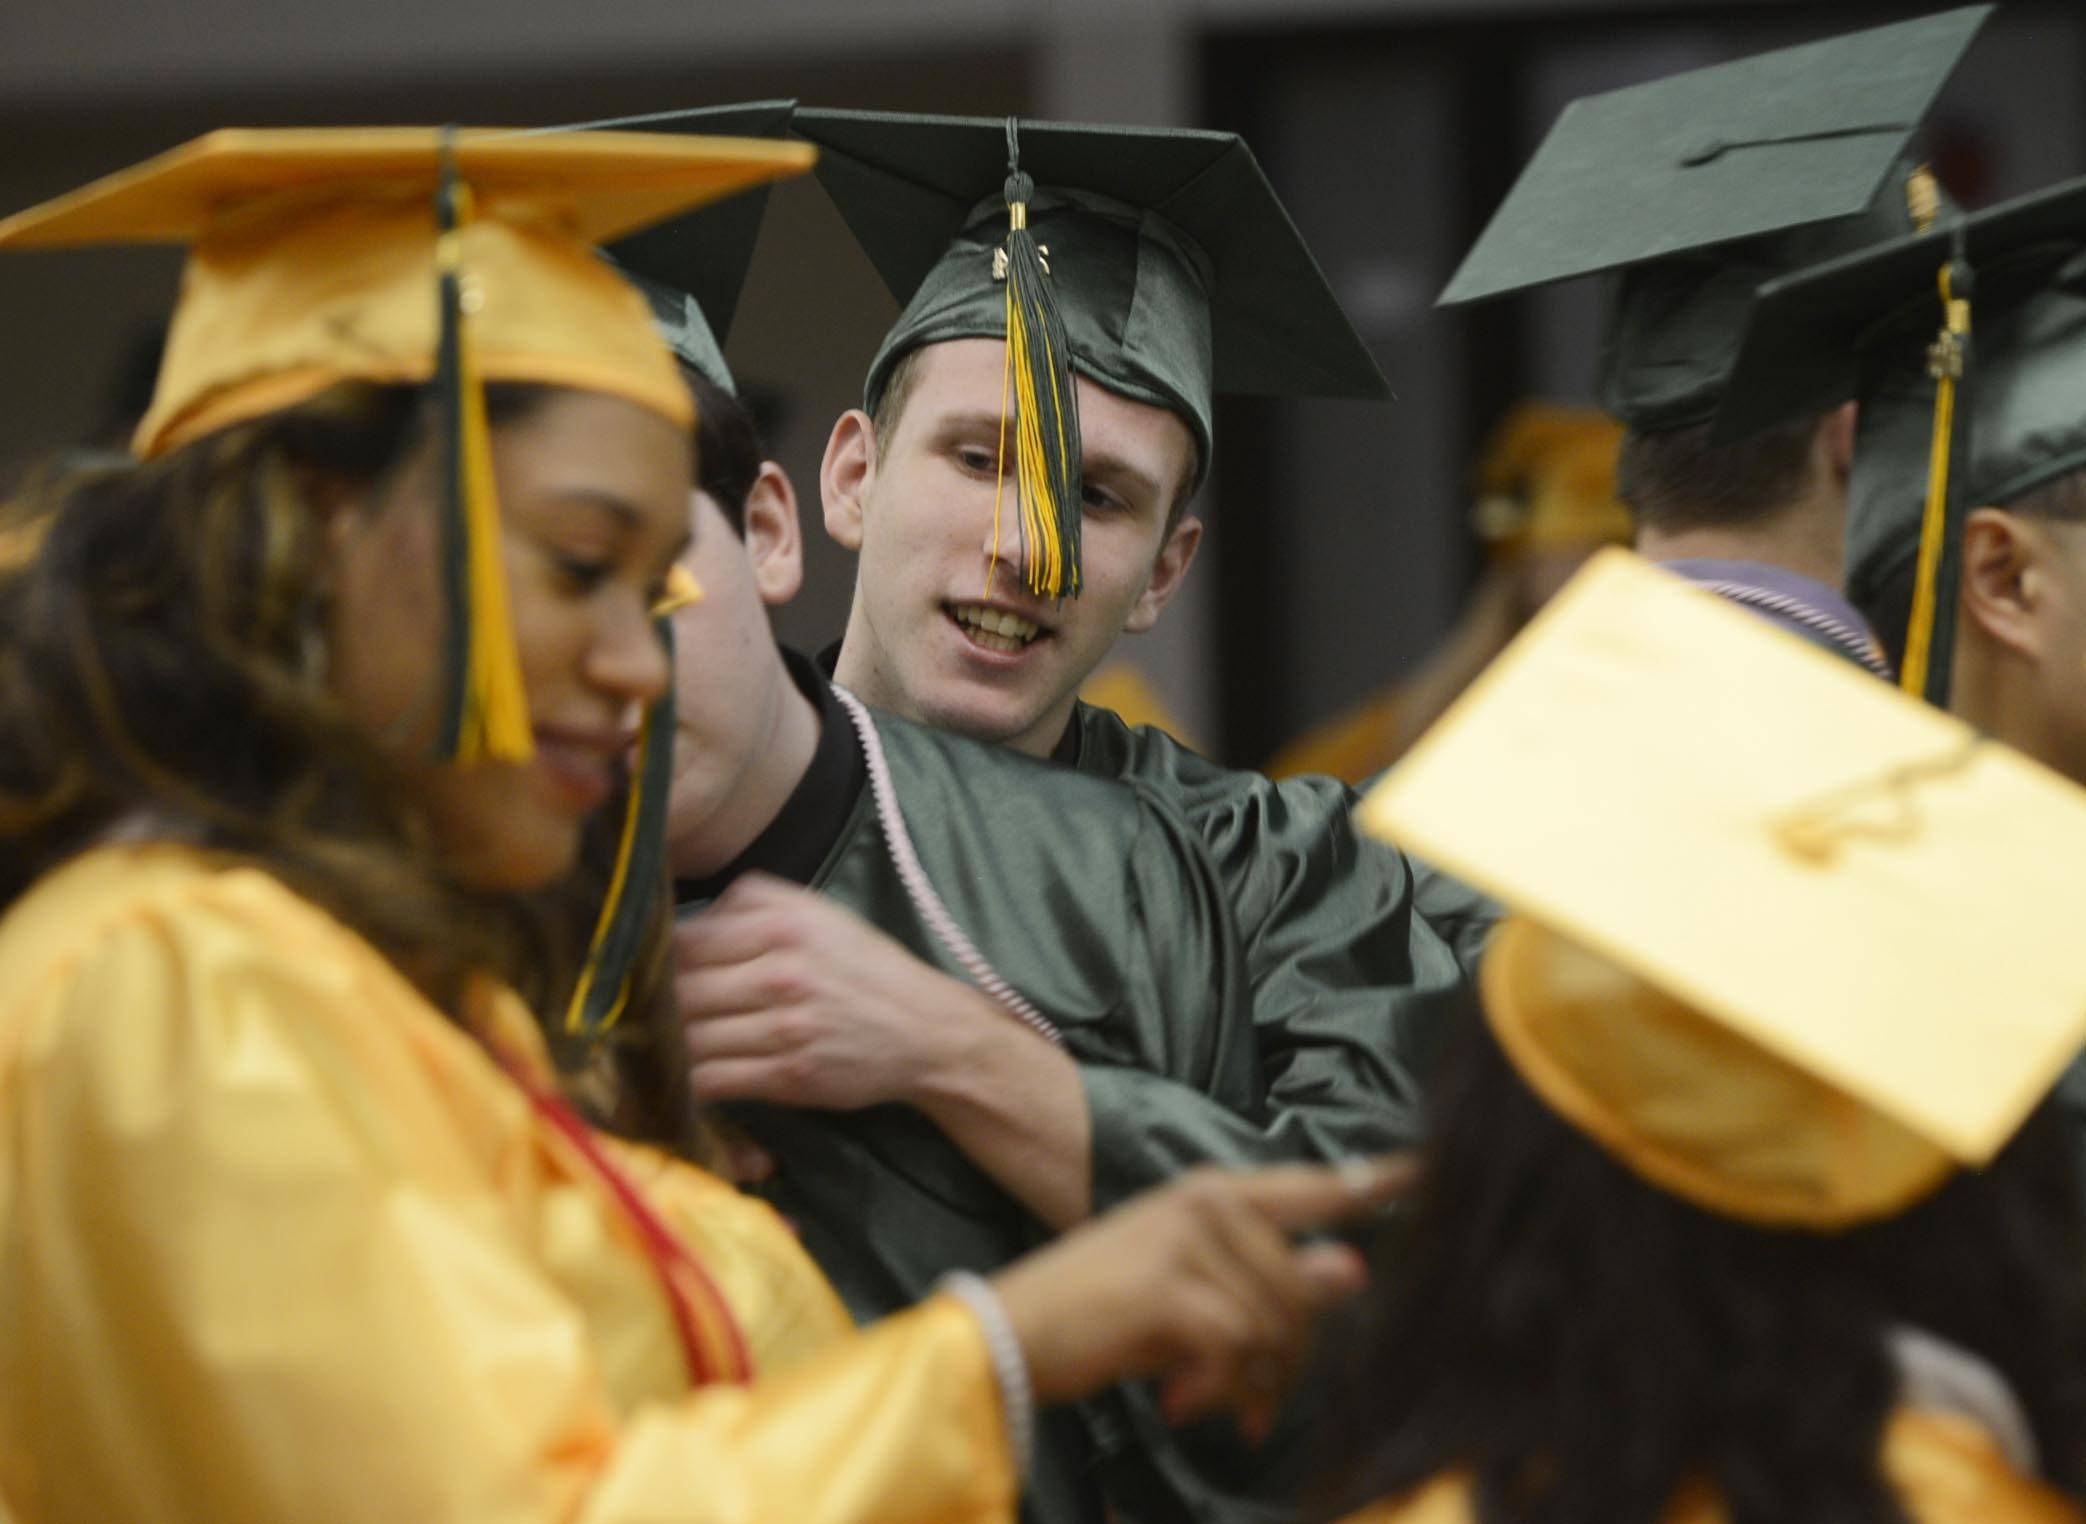 Images from the St. Edward High School graduation Tuesday, May 20th.